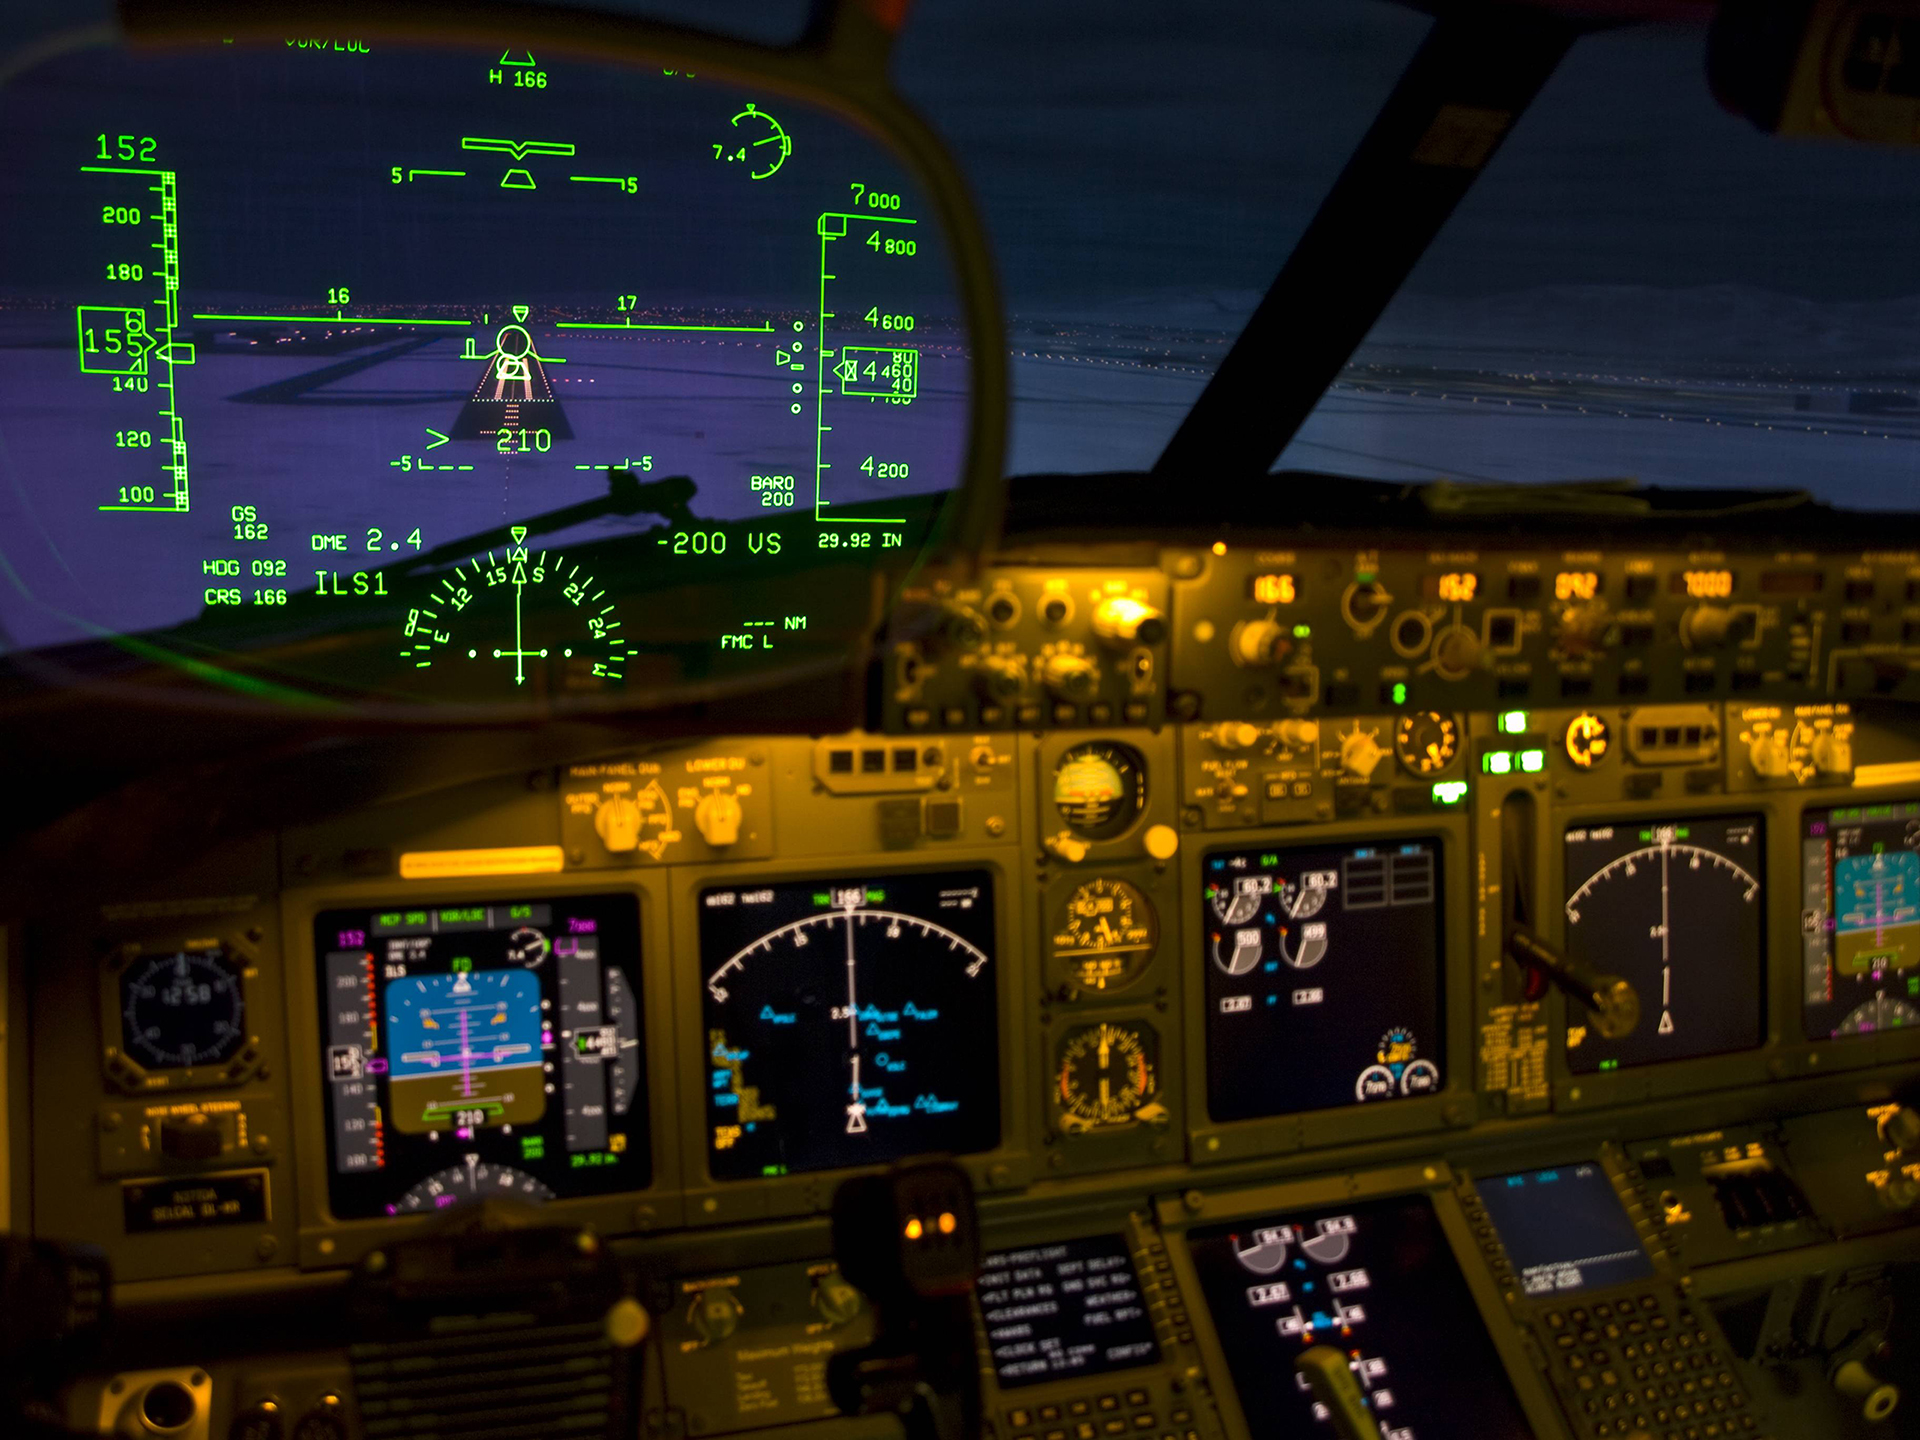 Heads up display cockpit airplane military wallpaper for Airplane cockpit wall mural